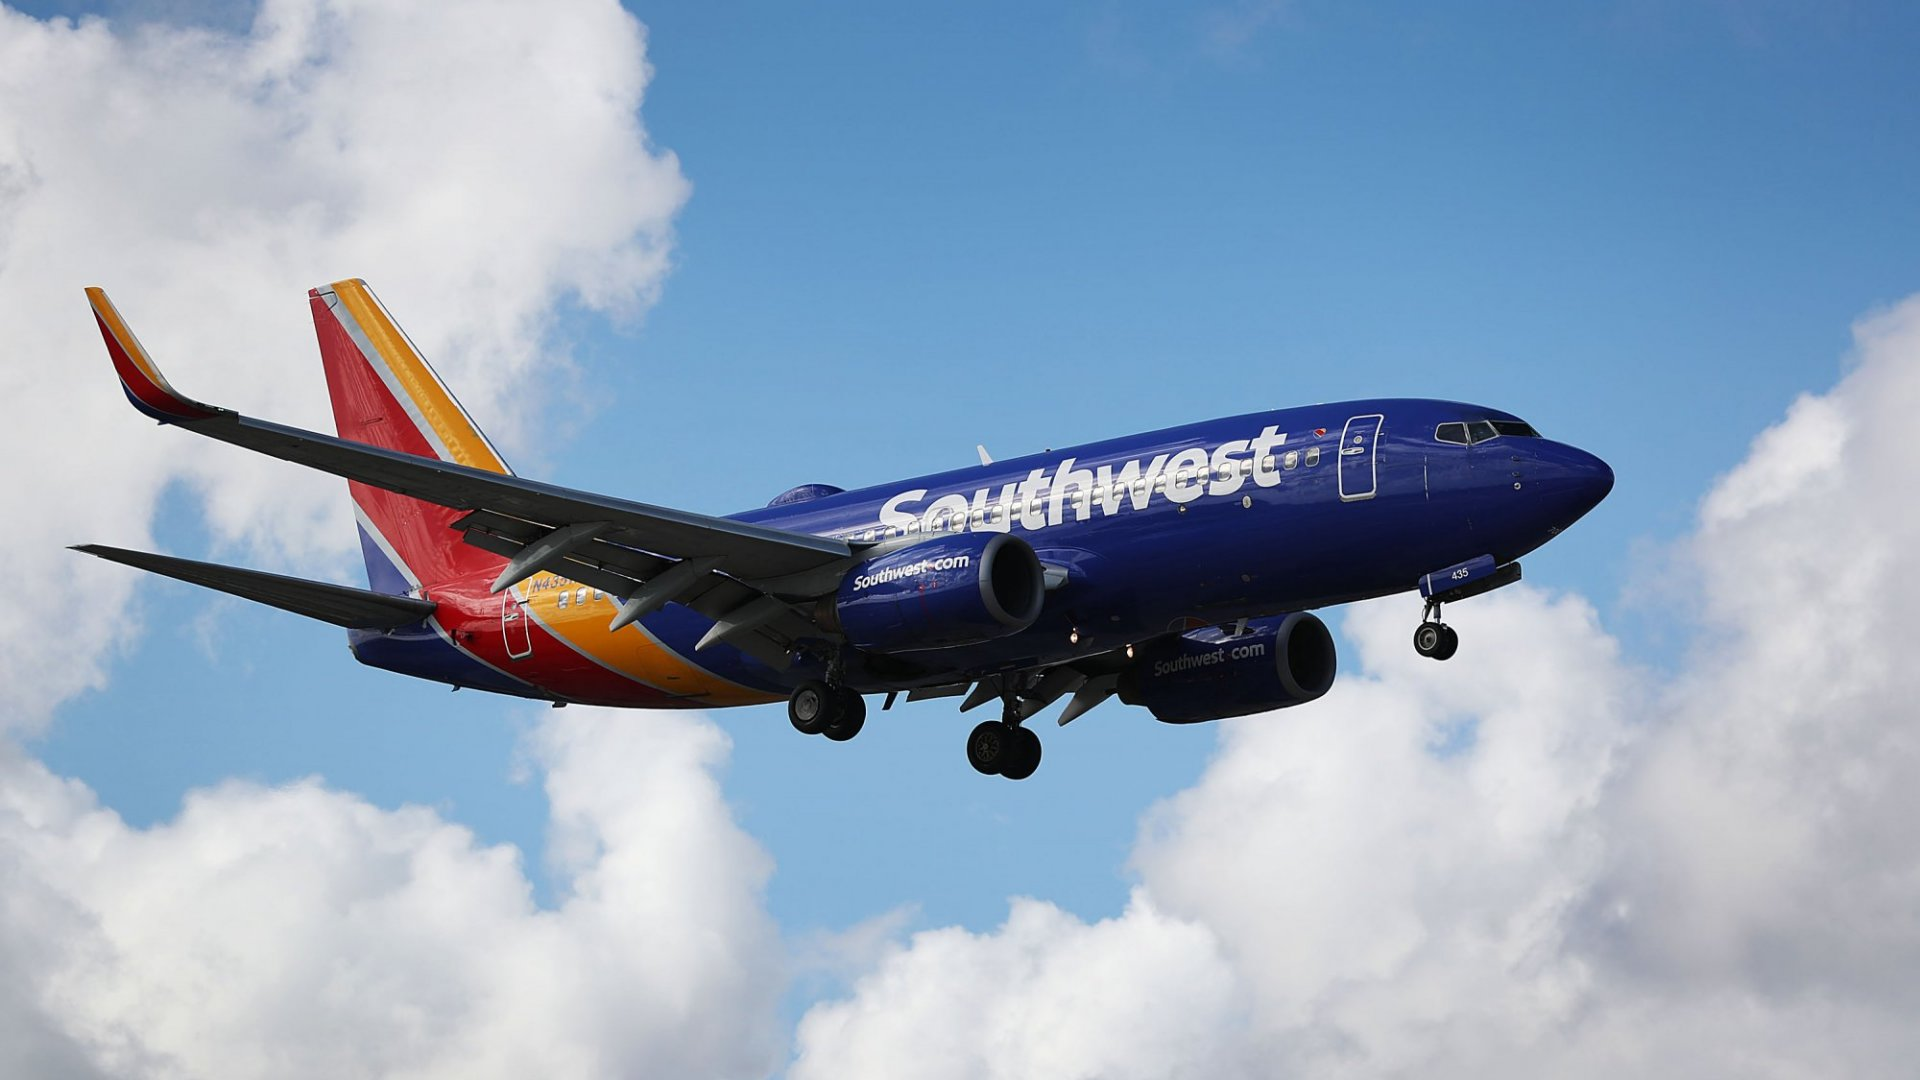 Southwest Airlines Just Got Some Very Bad News About What Passengers Think Of Them After the 737 Max. (For United Airlines, It's Even Worse)